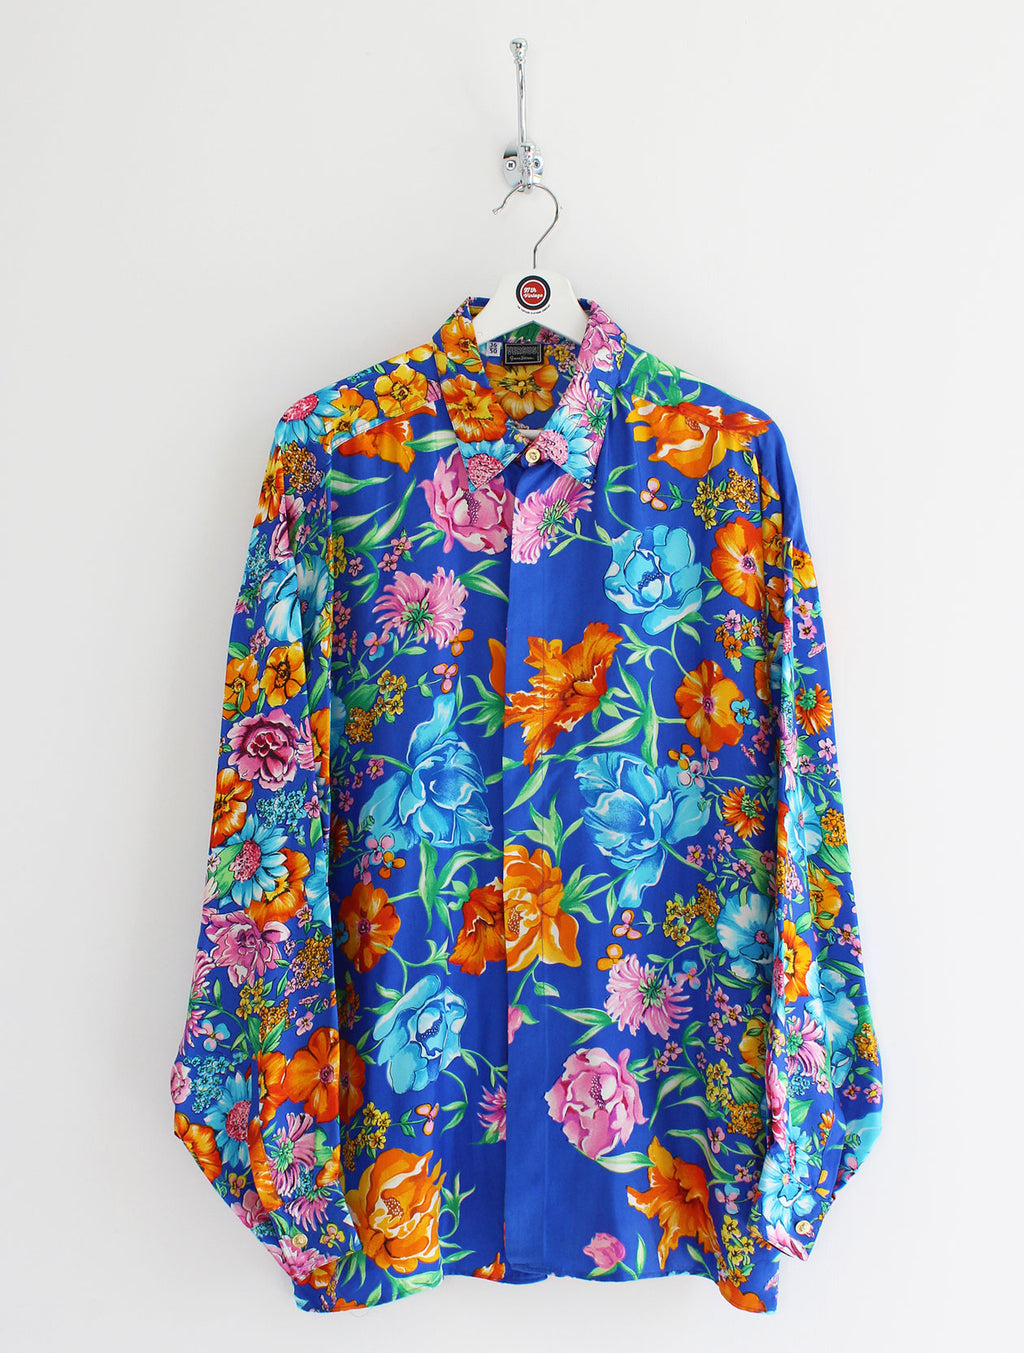 Versace Silk Shirt (XL)